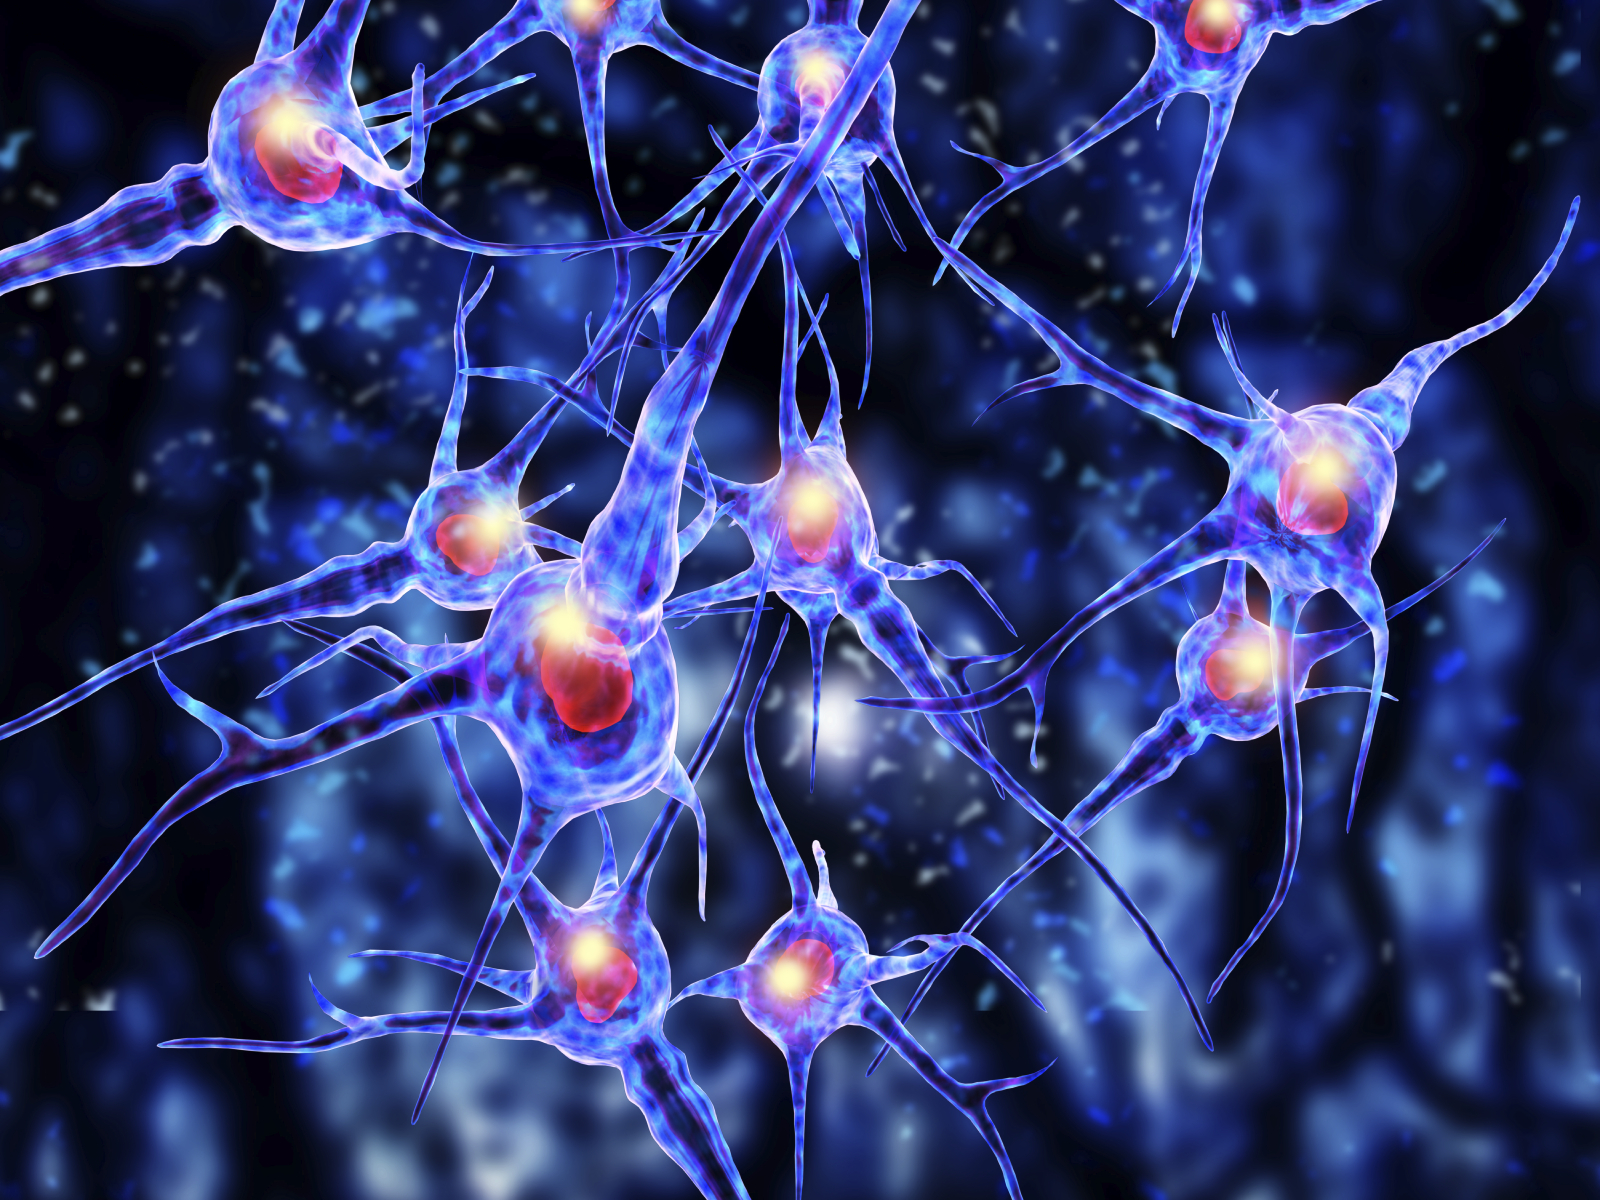 Use Synaptic In A Sentence Neuron Brain Cells Going Gentle Into That Good